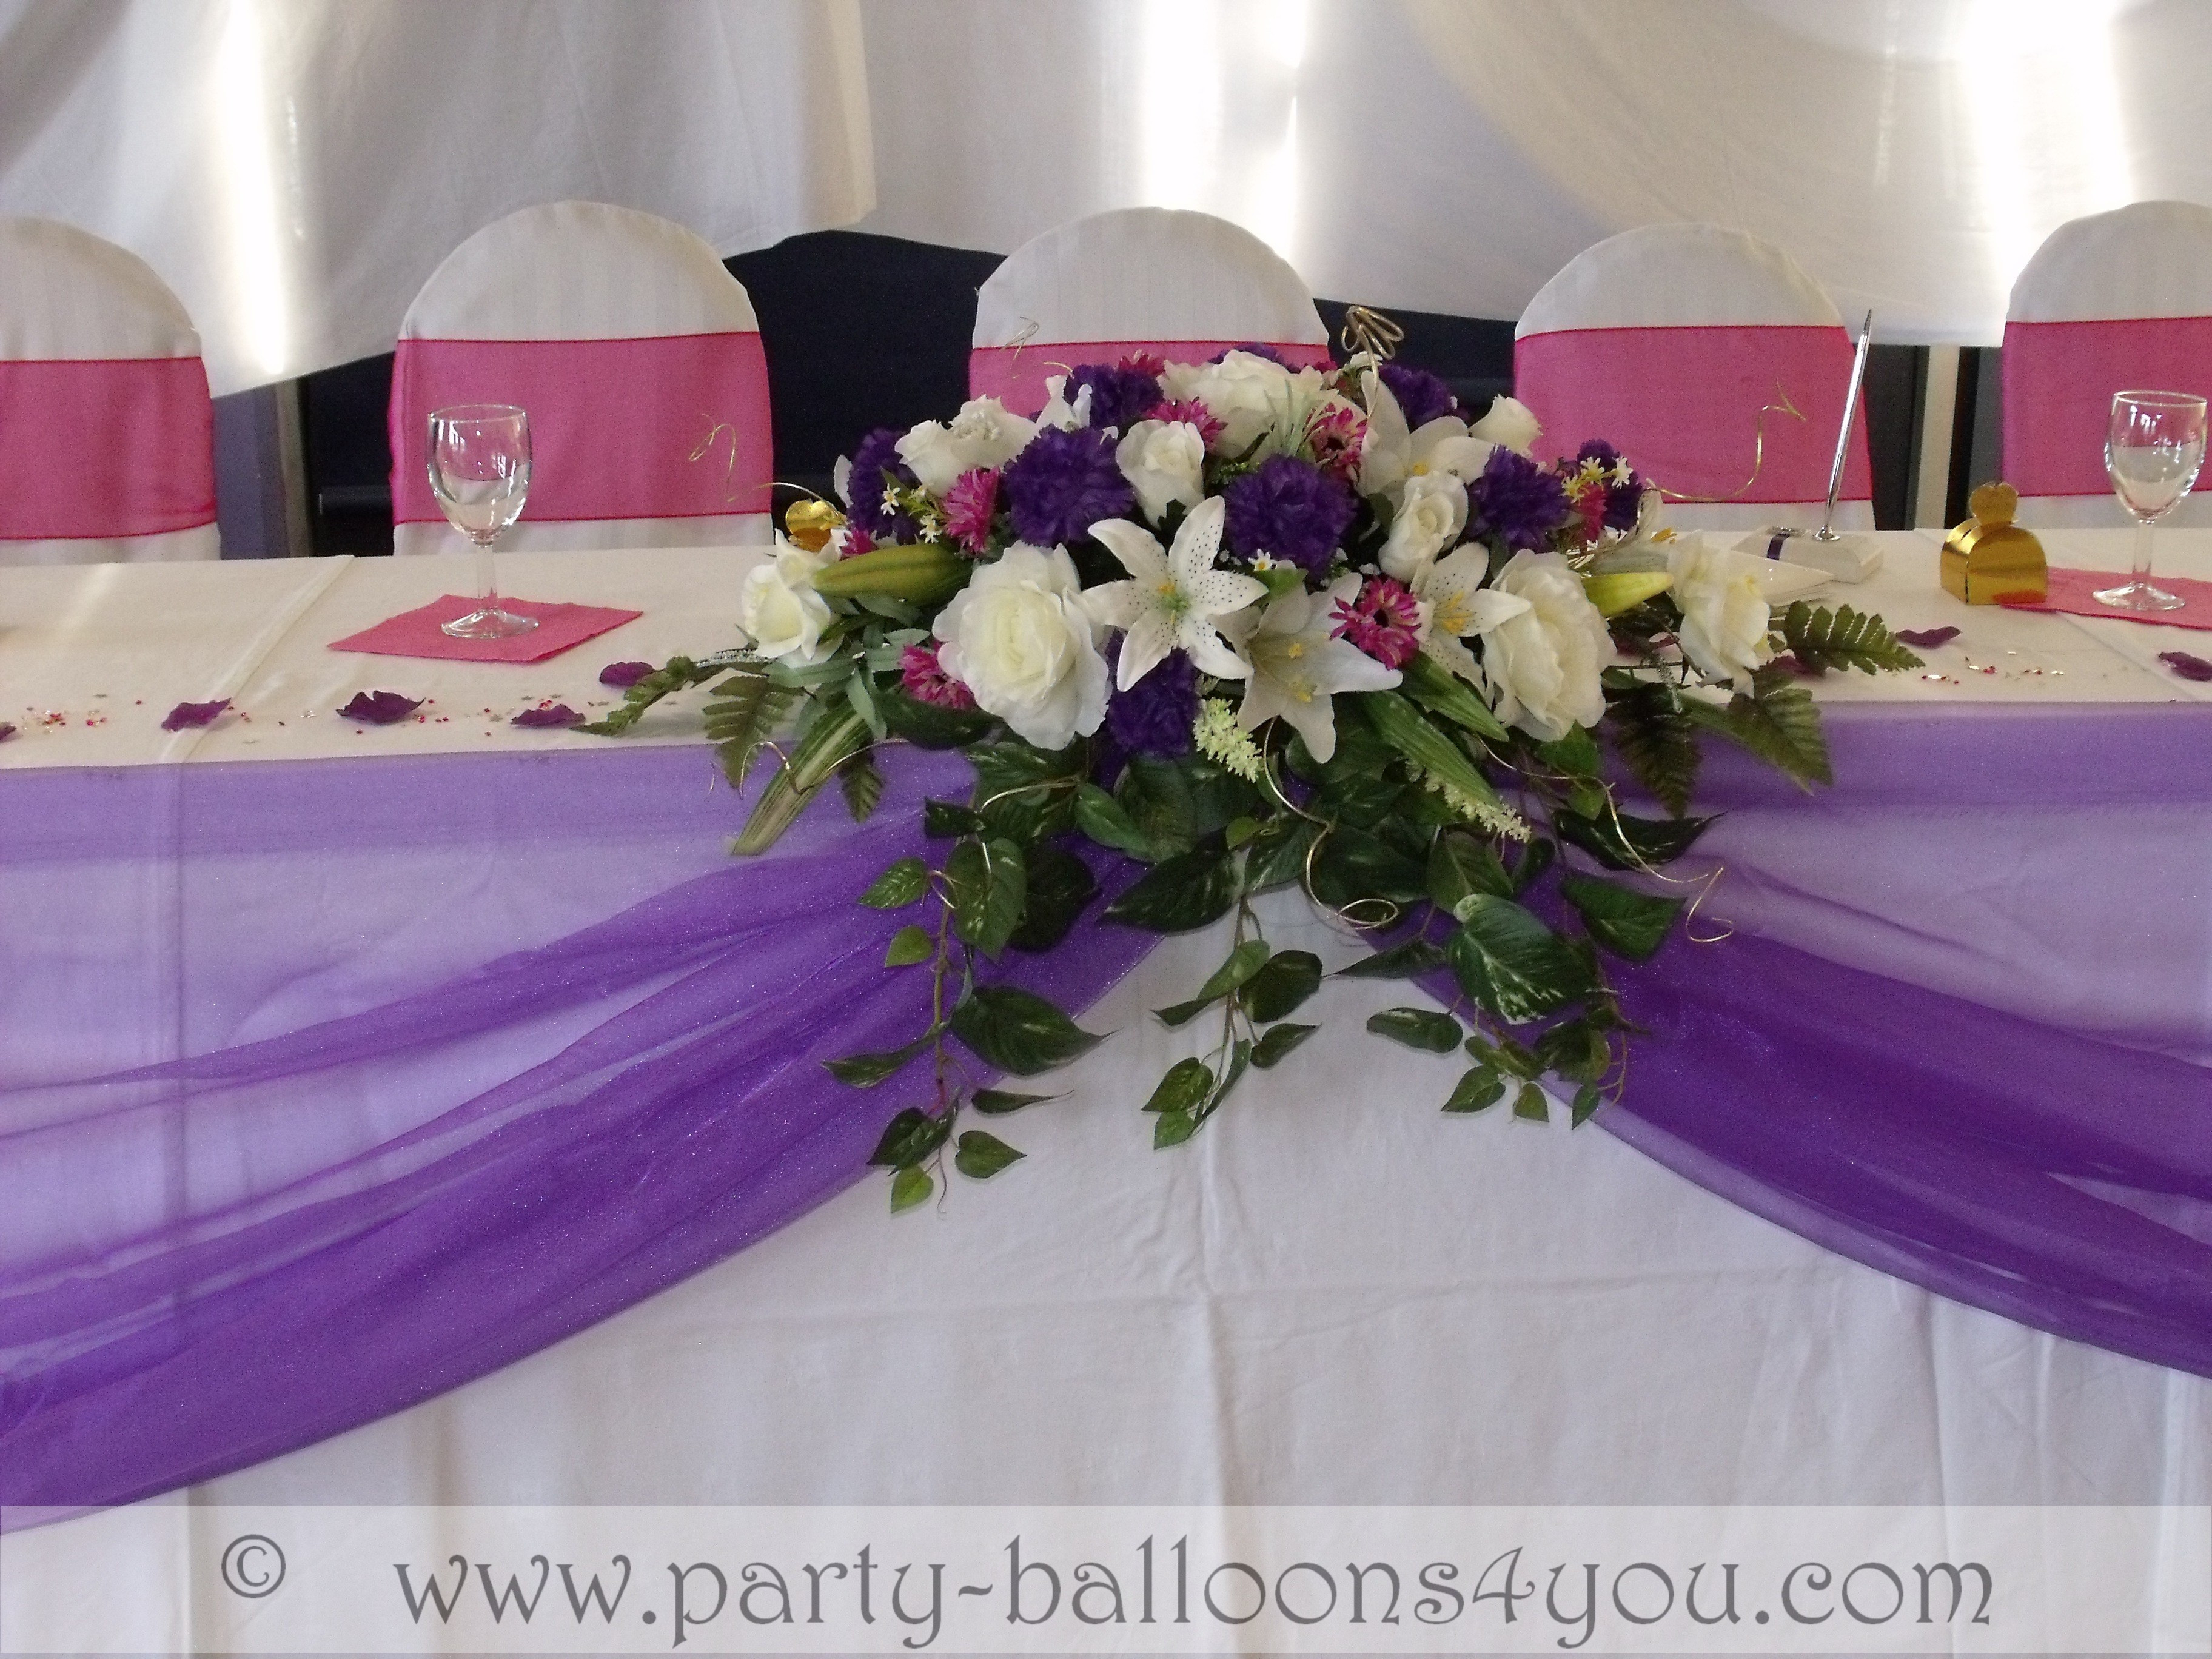 Wedding Table Decorations Lovely Christmas Wedding Table Decorations Romantic Decoration Of Delightful 41 Ideas Wedding Table Decorations